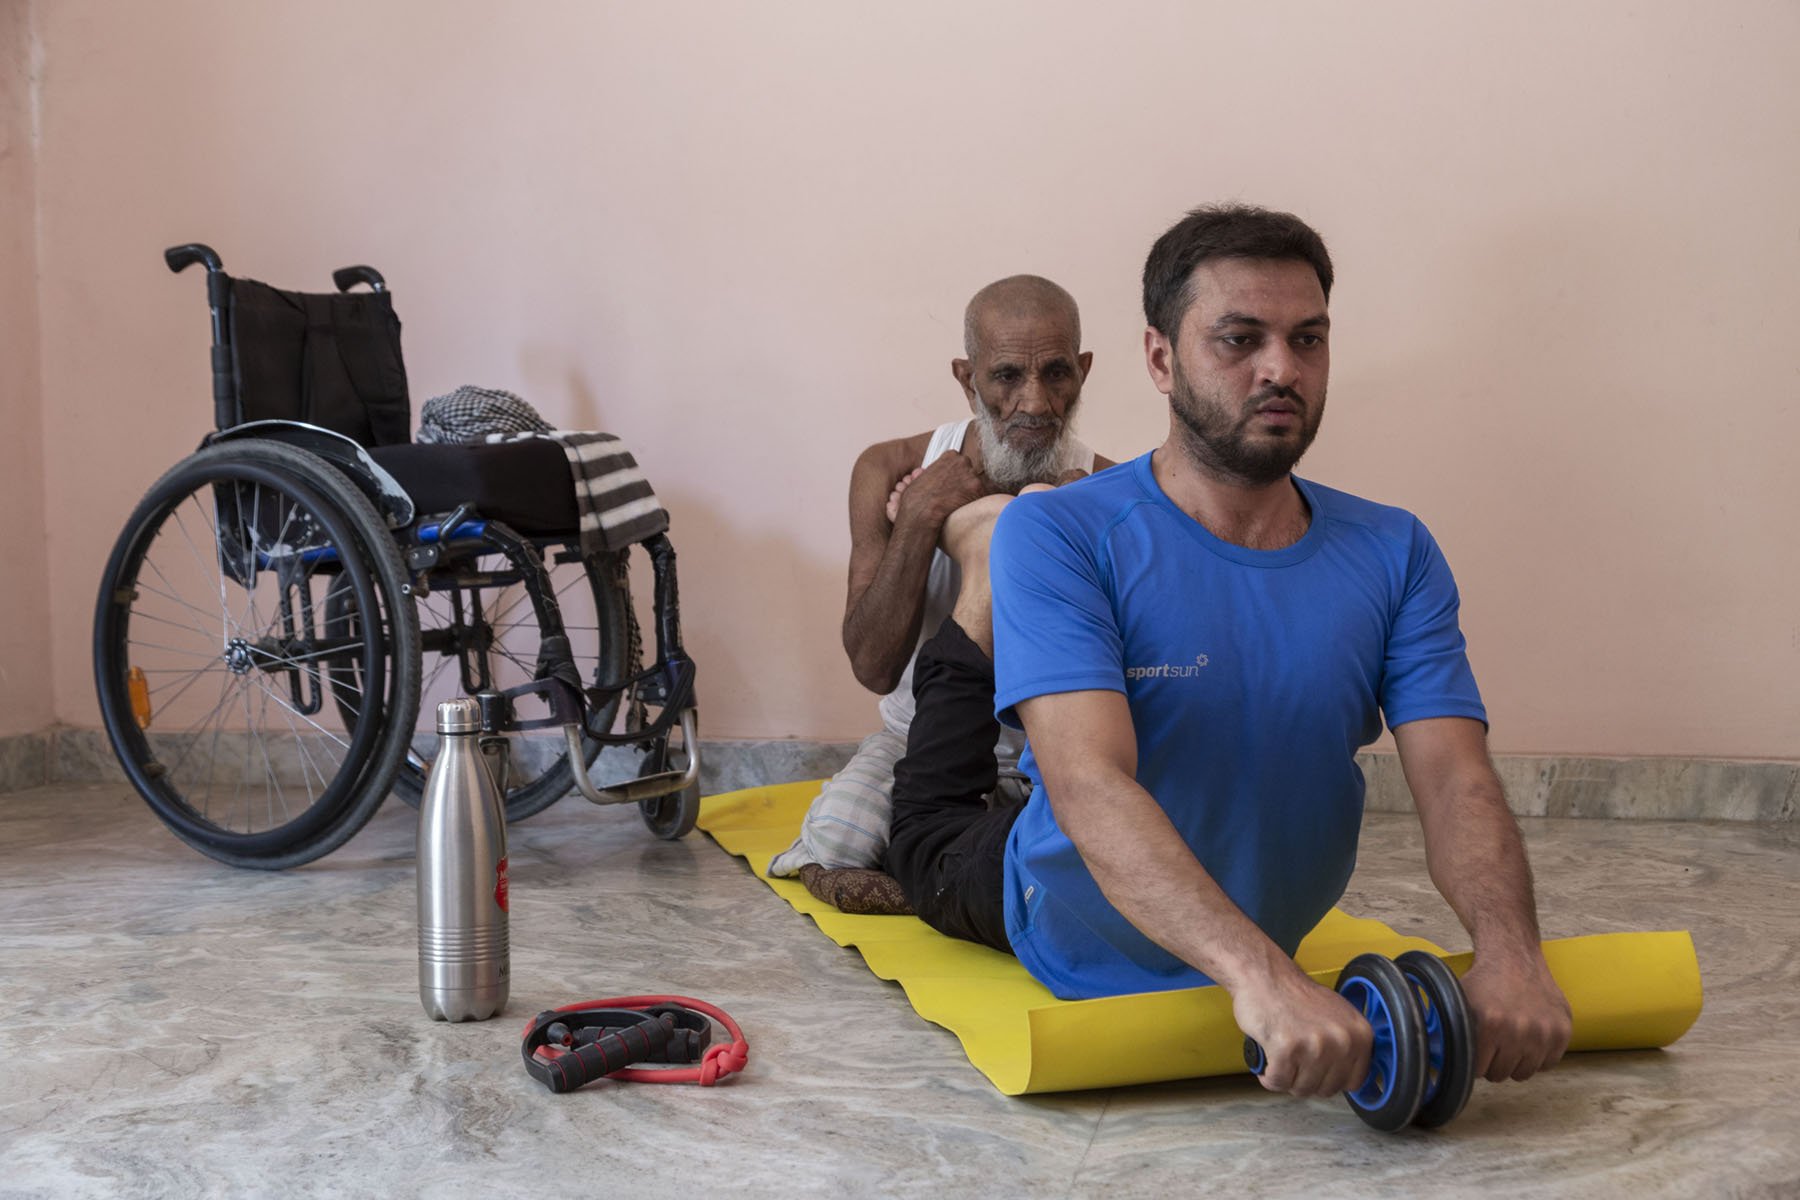 Mohammad Shams Aalam Shaikh is exercising on a yellow yoga mat, lying on his stomach. Wearing a blue T-shirt and black track pants, he has raised his head and chest. Both arms are extended. His hands, holding a roller, rest on the ground. Both knees are bent backwards and his 90-year-old father is sitting down behind him and holding up his feet. On the ground to their left are a steel flask and a wheelchair.